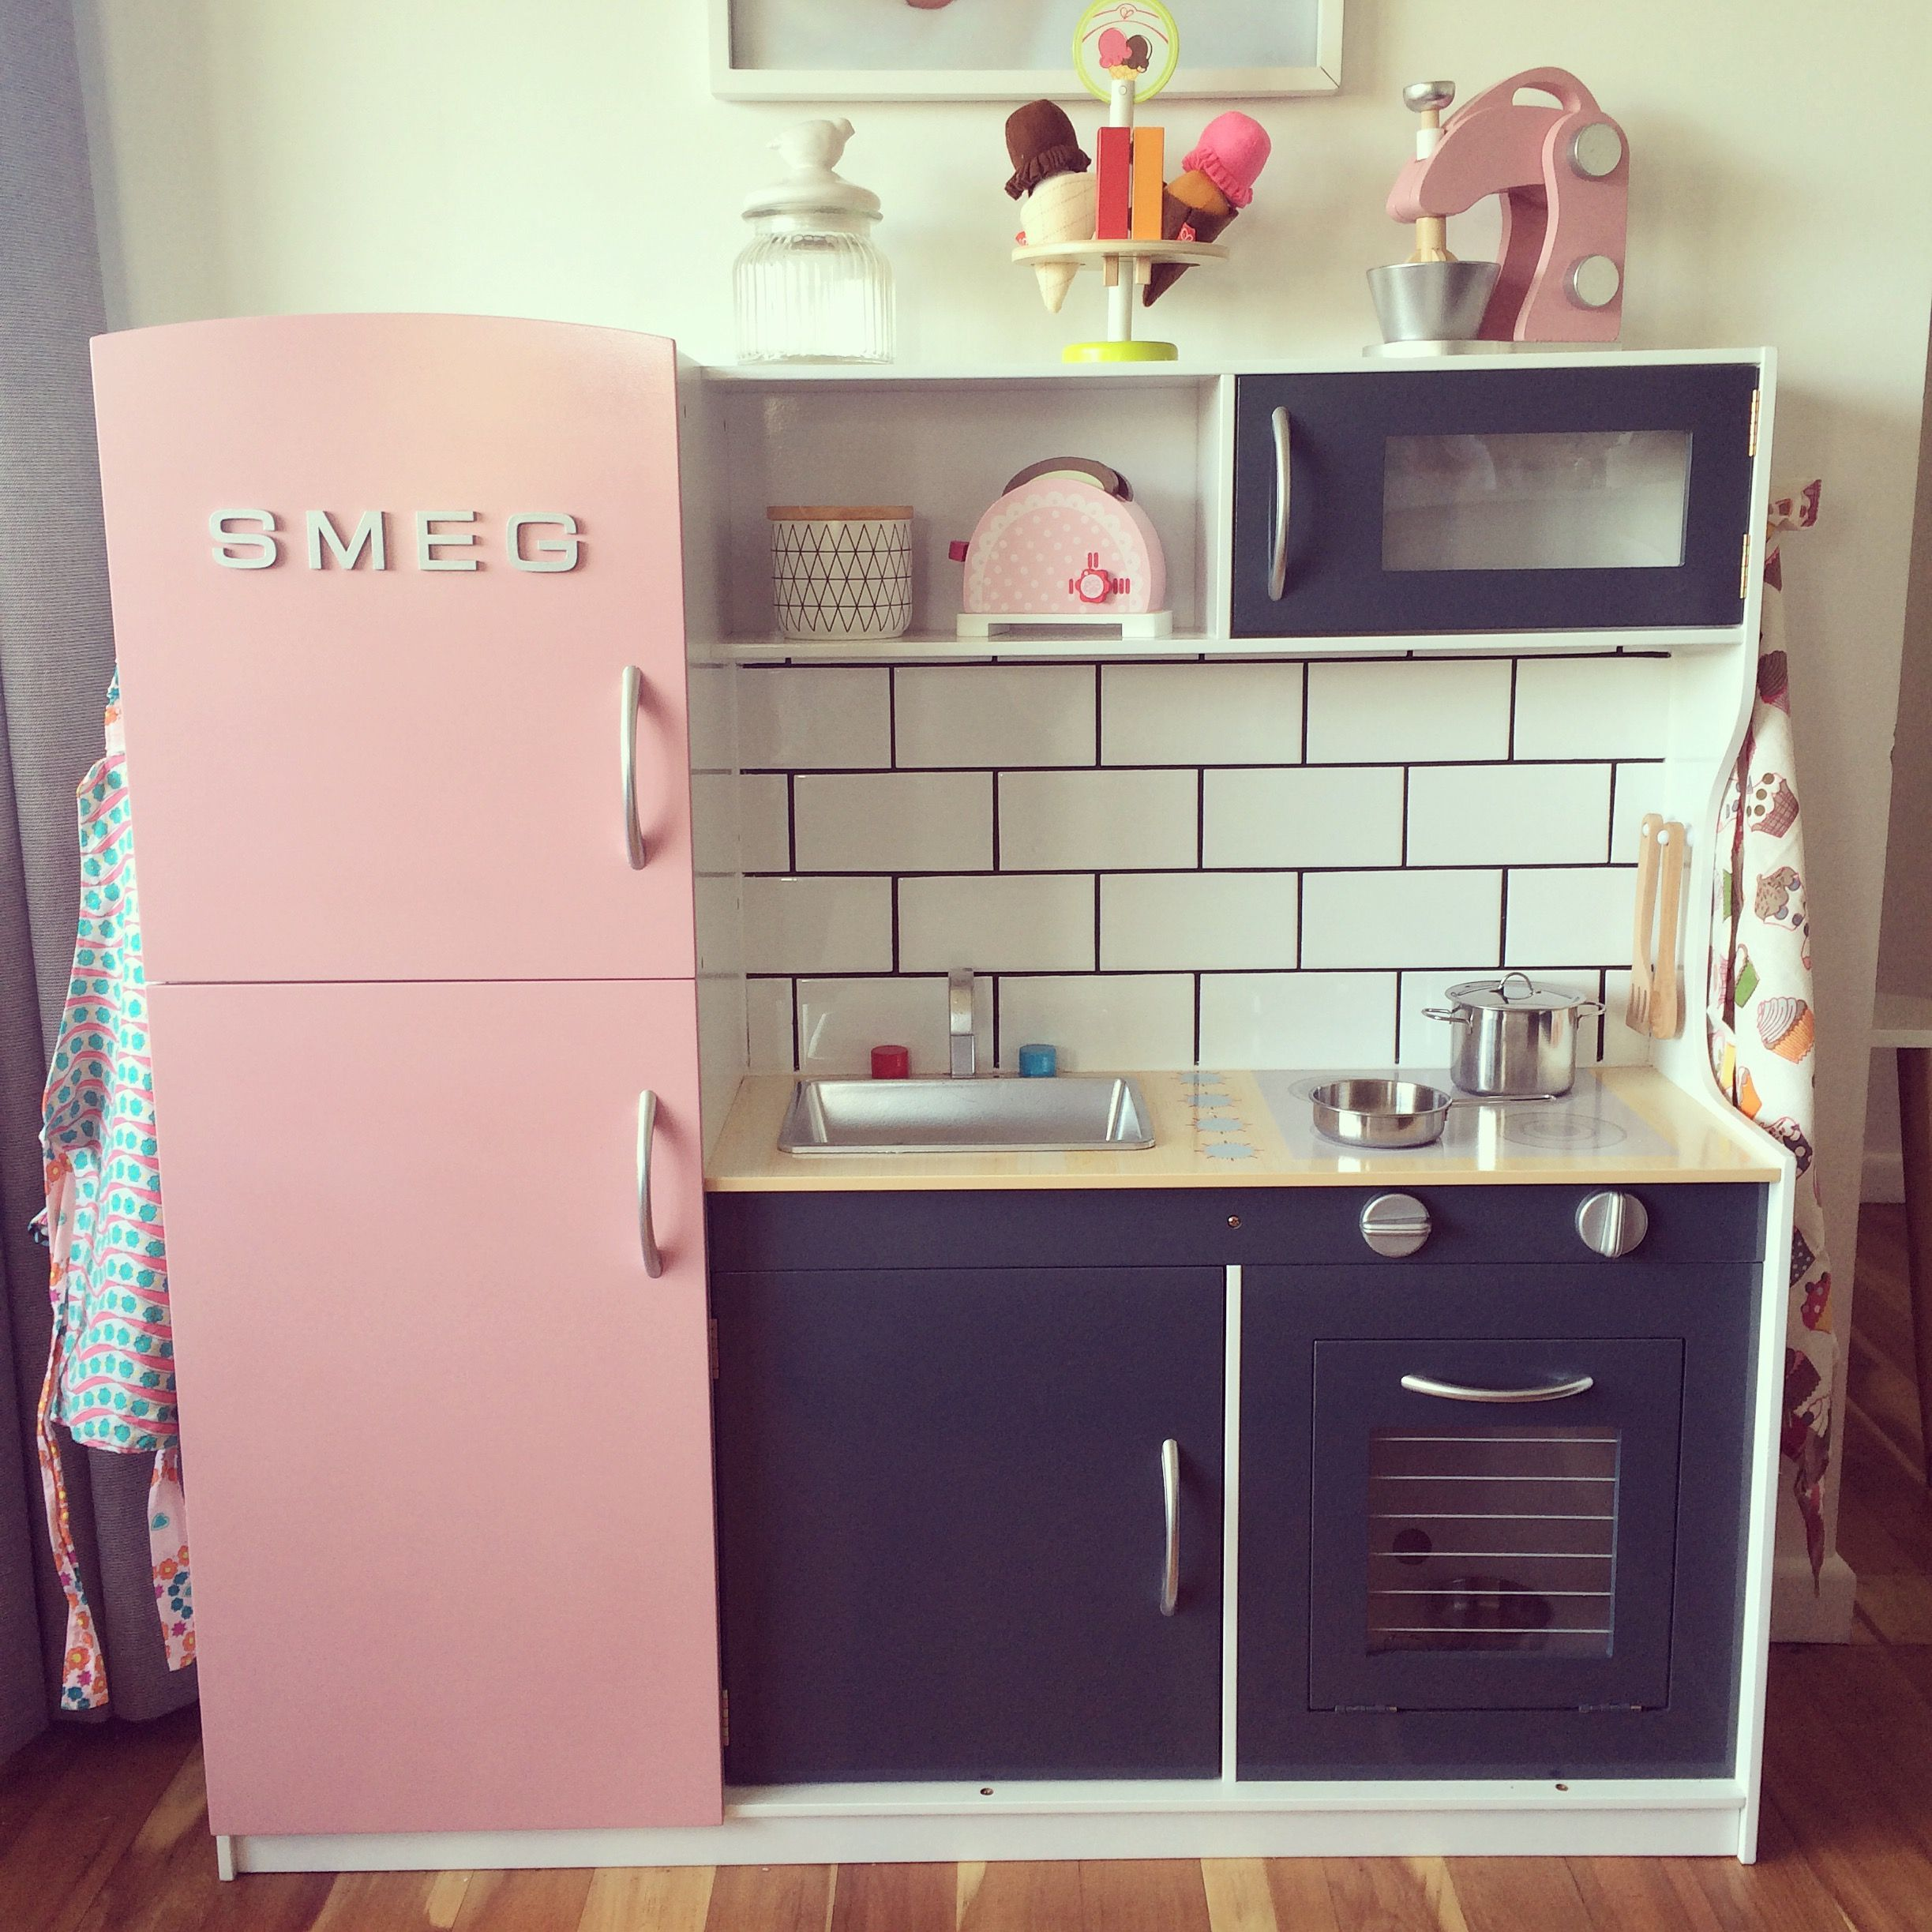 Cocina Ikea Juguete Personalizada Our Kmart Kids Kitchen Hack Woodcraft Pinterest